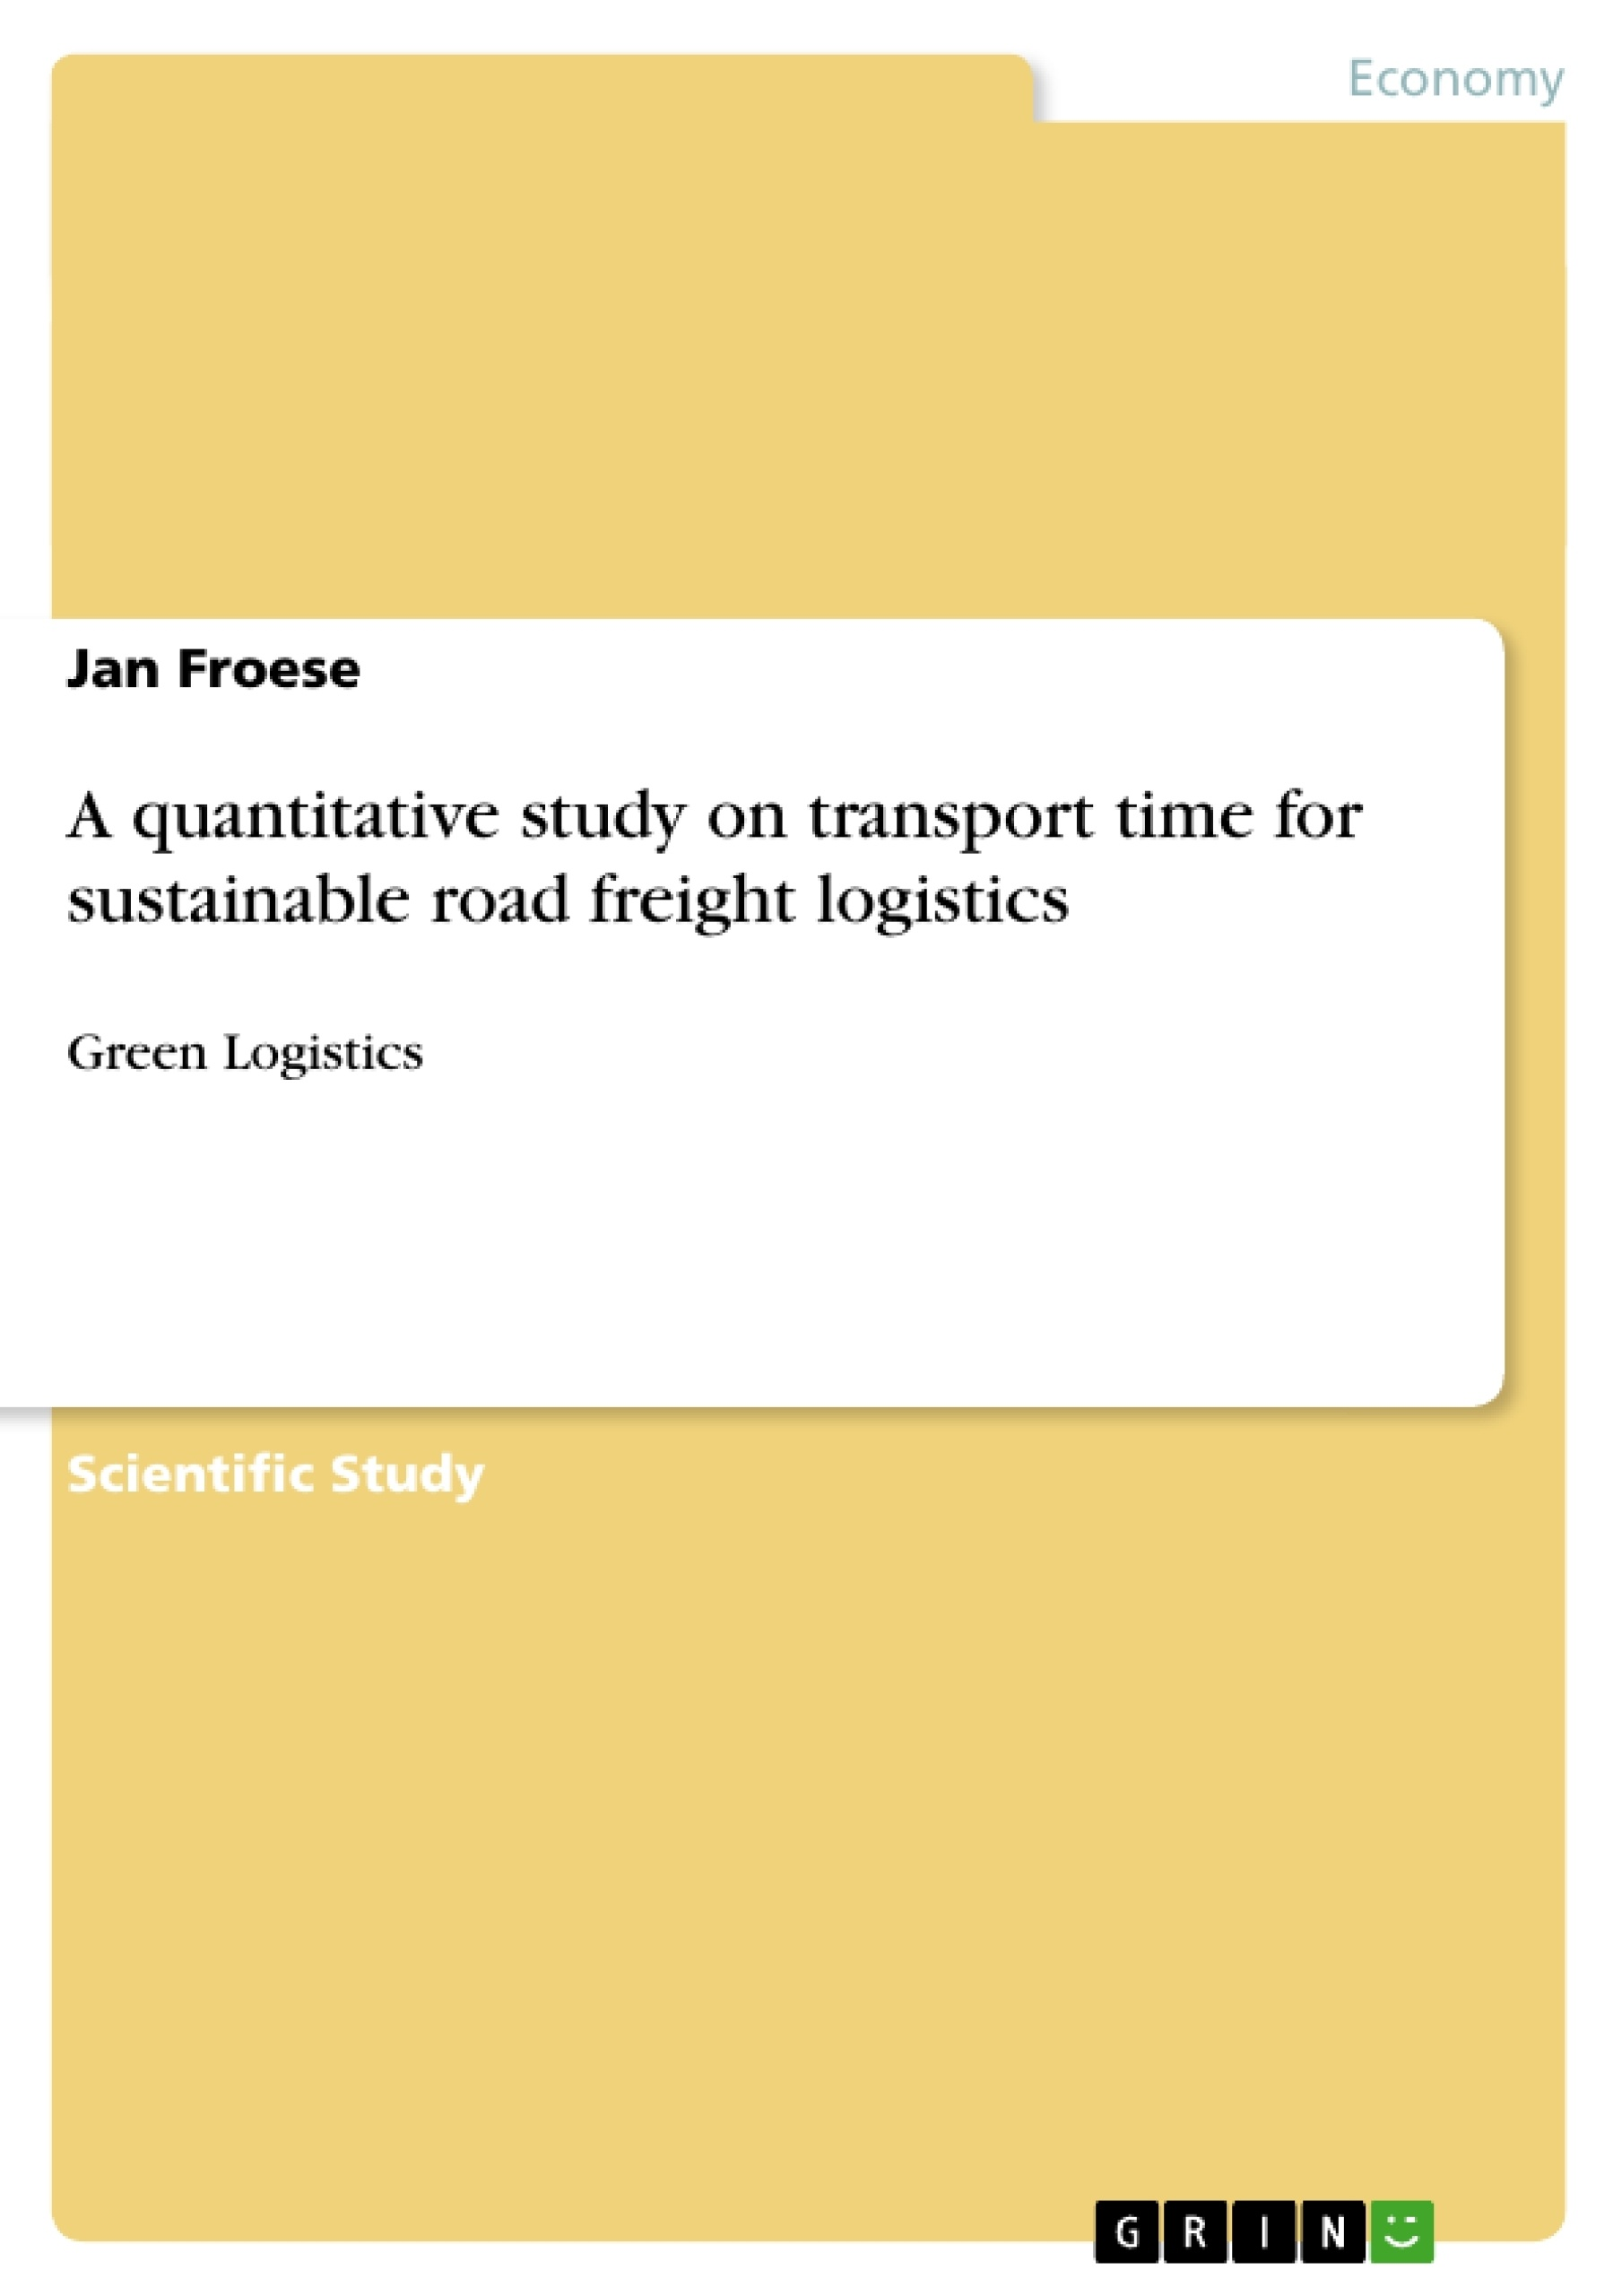 Title: A quantitative study on transport time for sustainable road freight logistics